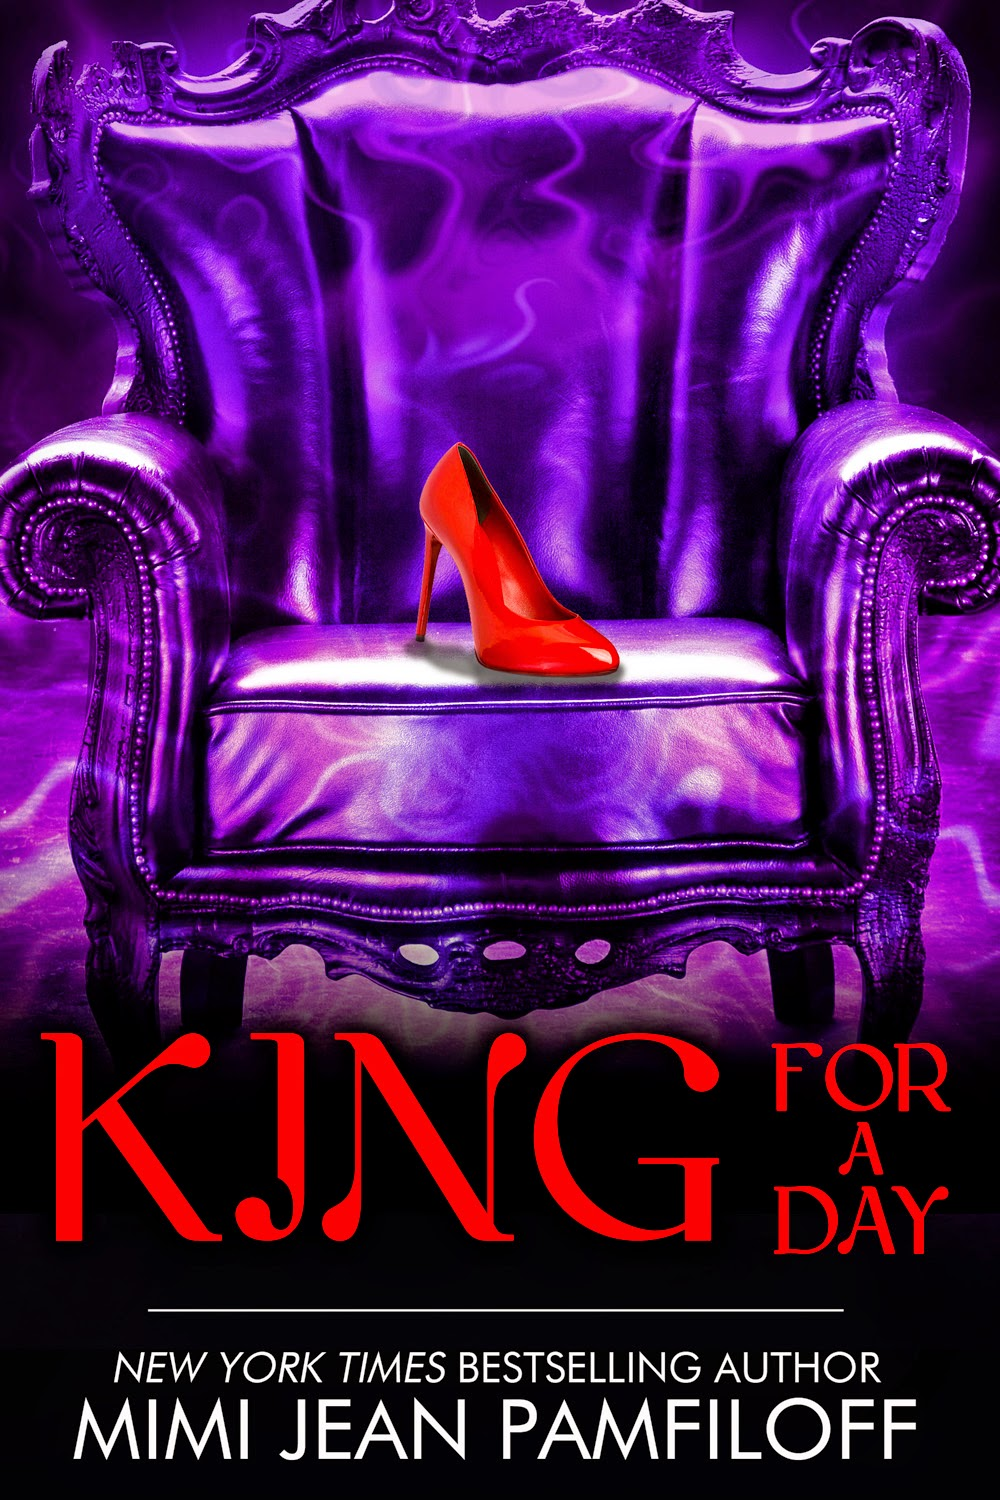 https://www.goodreads.com/book/show/22042981-king-for-a-day